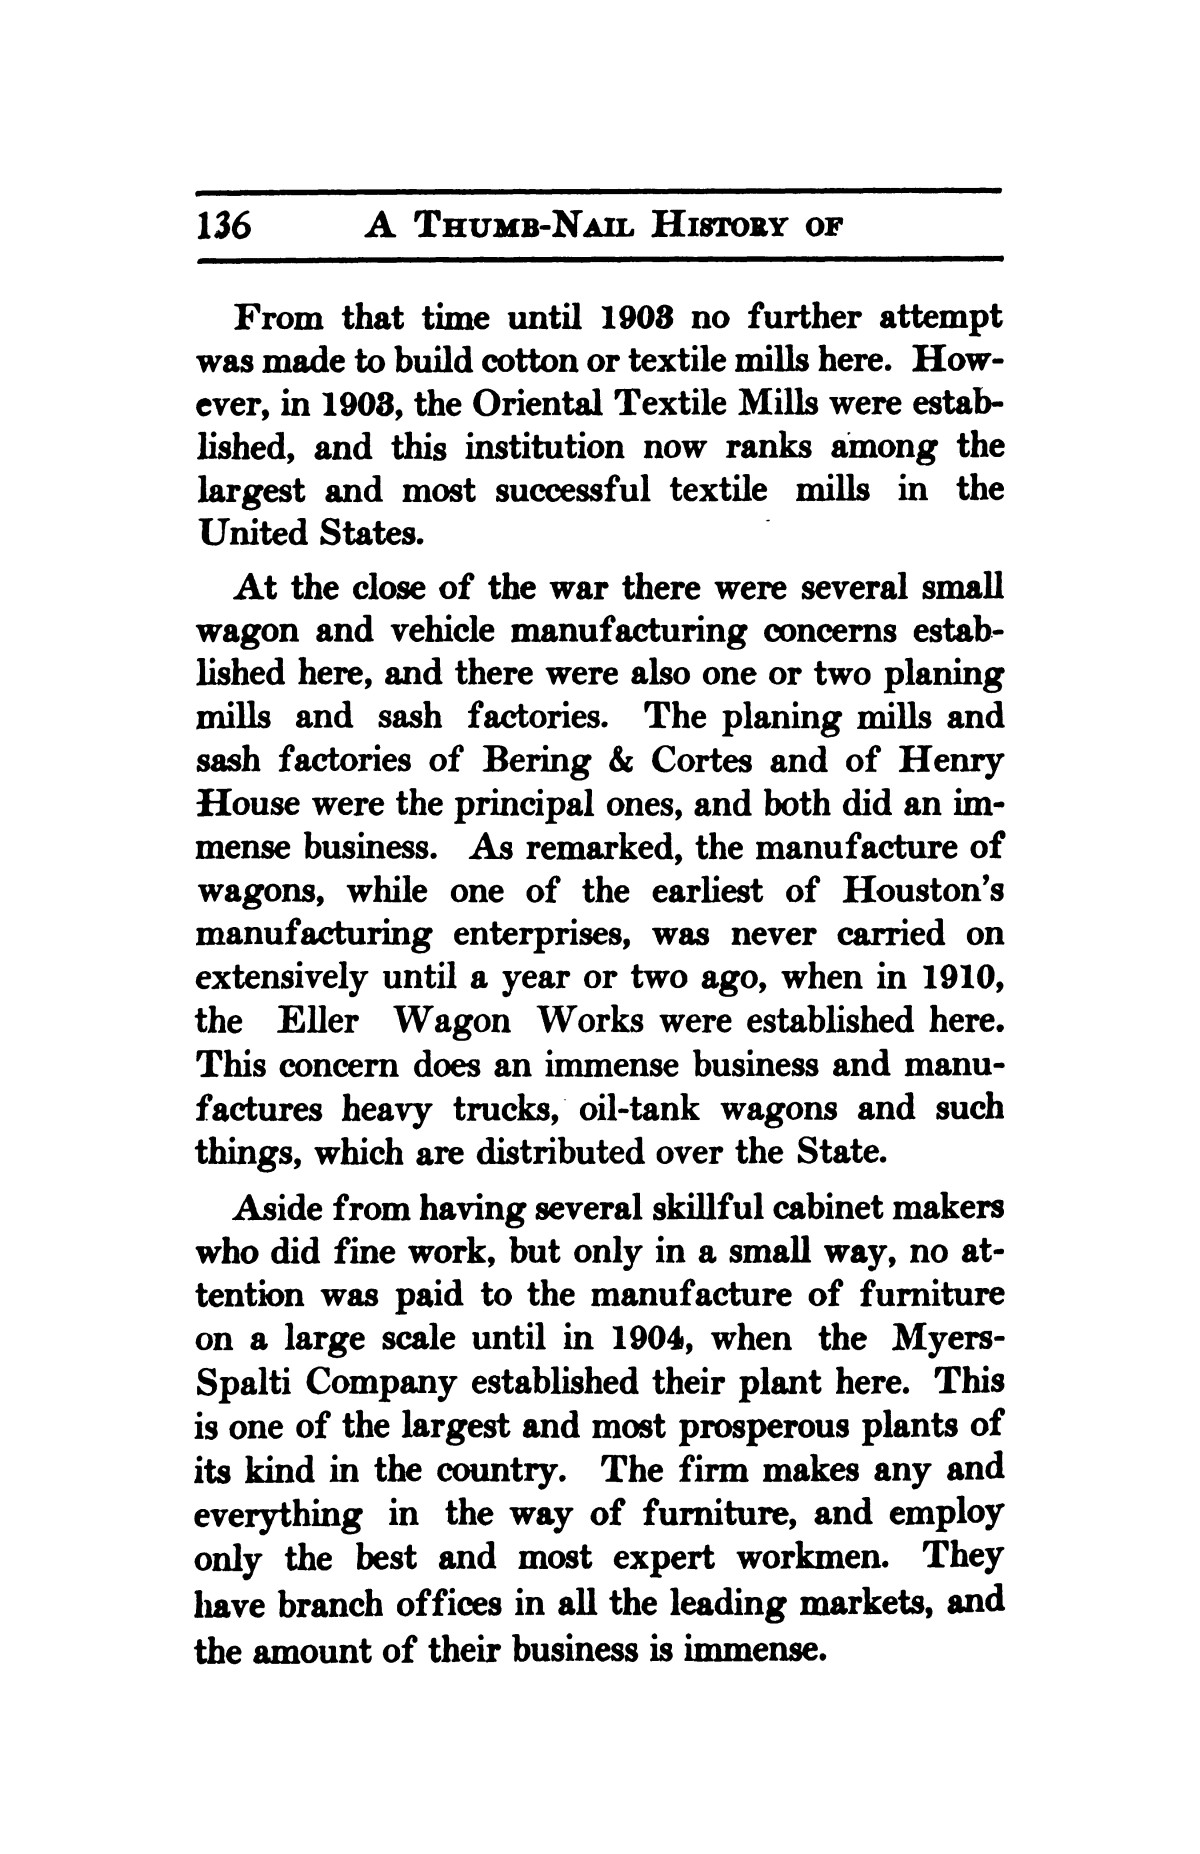 A thumb-nail history of the city of Houston, Texas, from its founding in 1836 to the year 1912                                                                                                      136